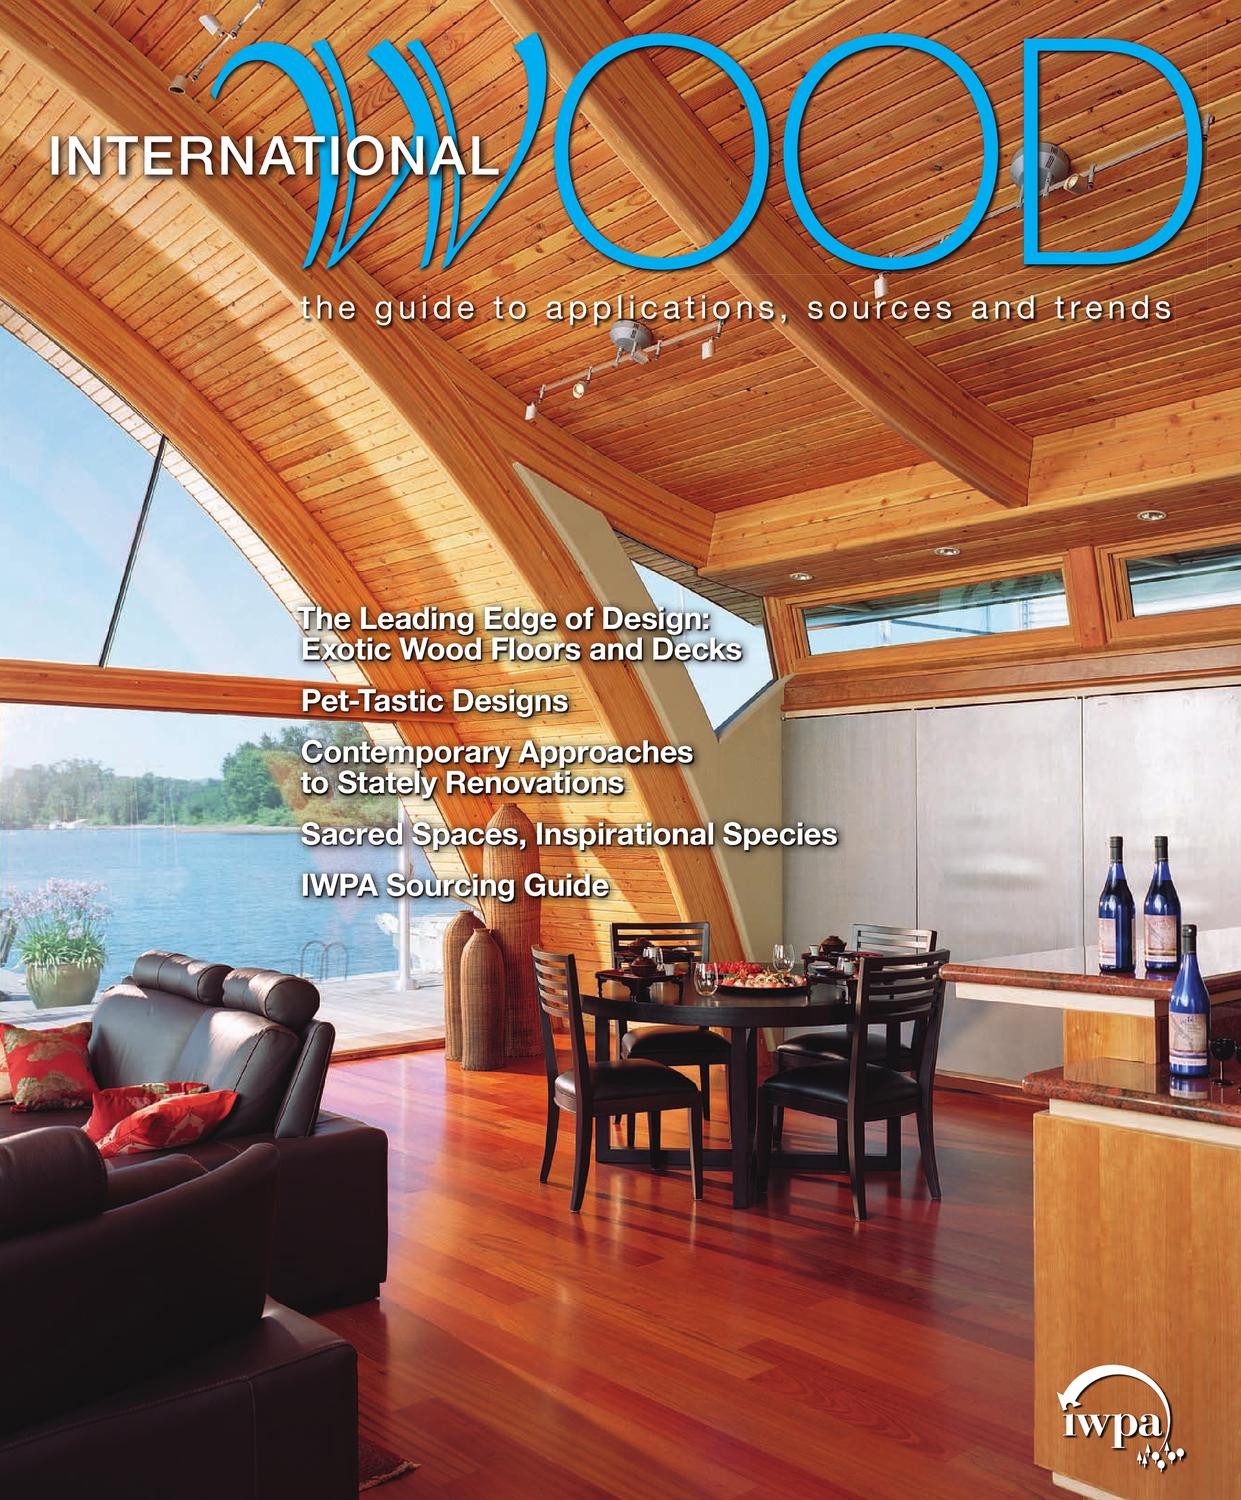 hardwood floor refinishing st louis mo of international wood magazine 09 by bedford falls communications issuu intended for page 1